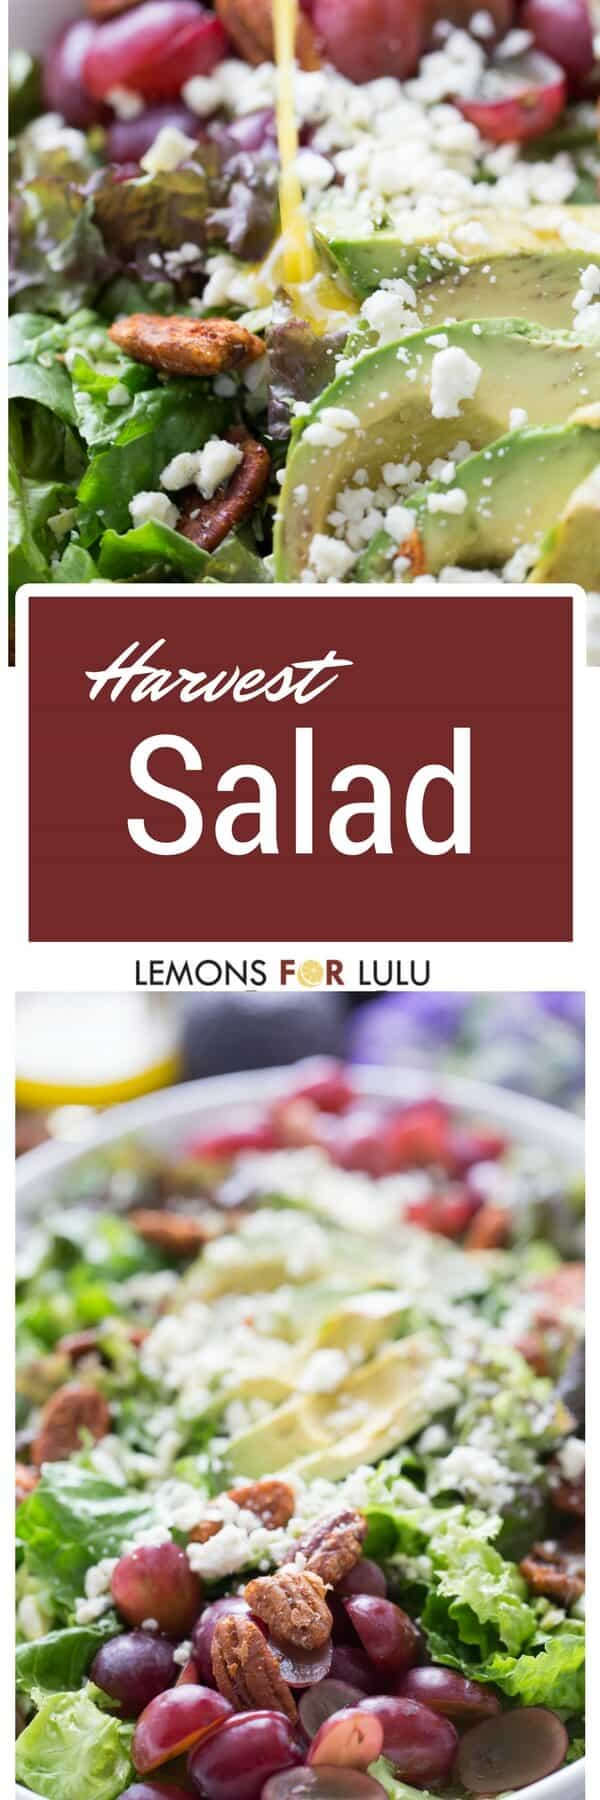 Every good meal begins with a good salad! This Harvest salad has everyday ingredients tossed together in the most elegant way!